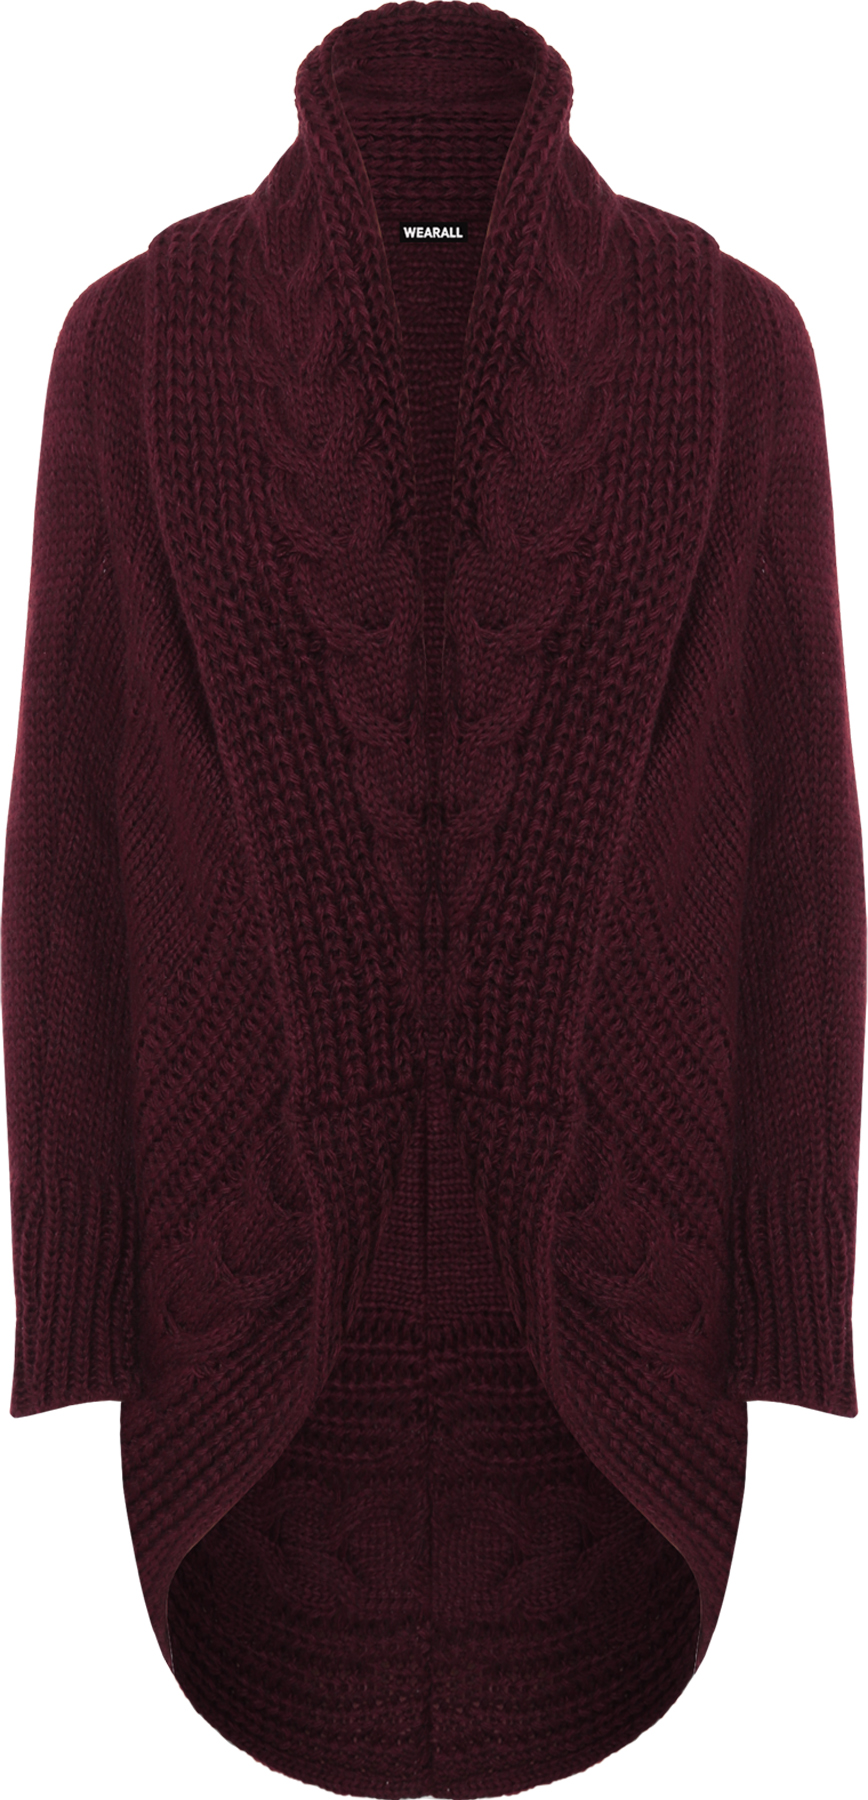 Womens Cable Knitted Cardigan Top Ladies Long Sleeve Open Aran Chunky Plain ...